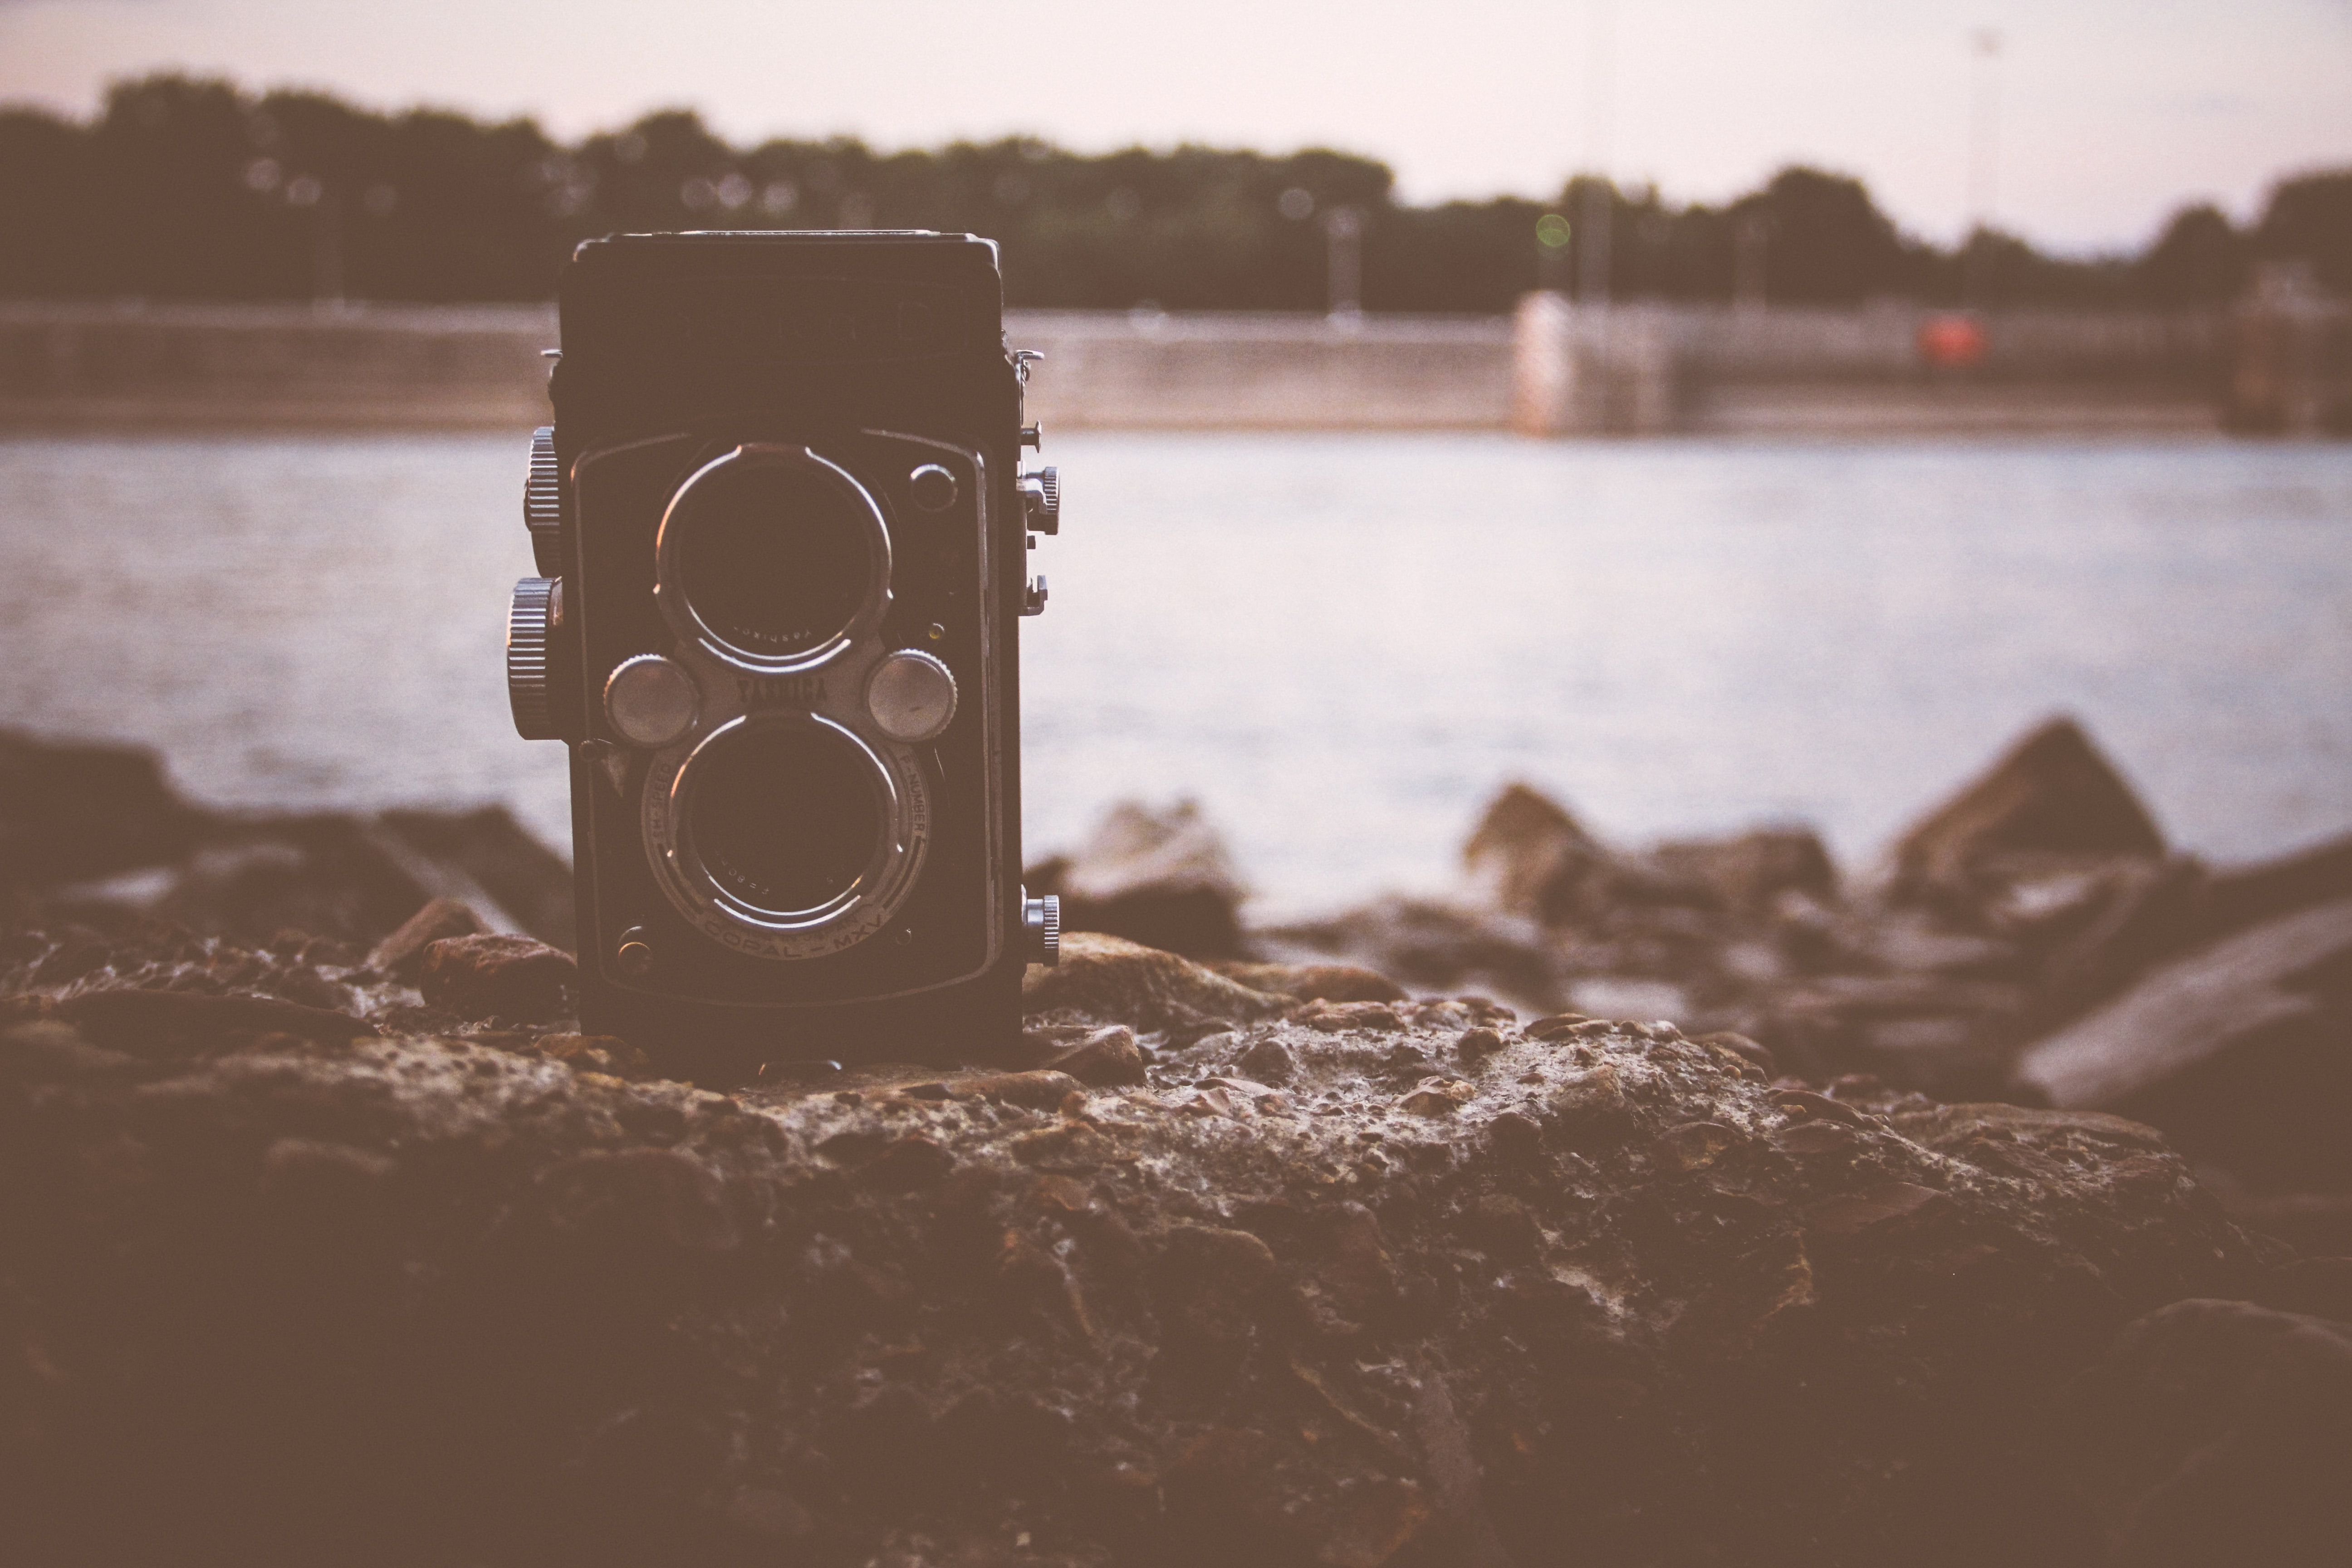 black land camera on rock in front of body of water during daytime